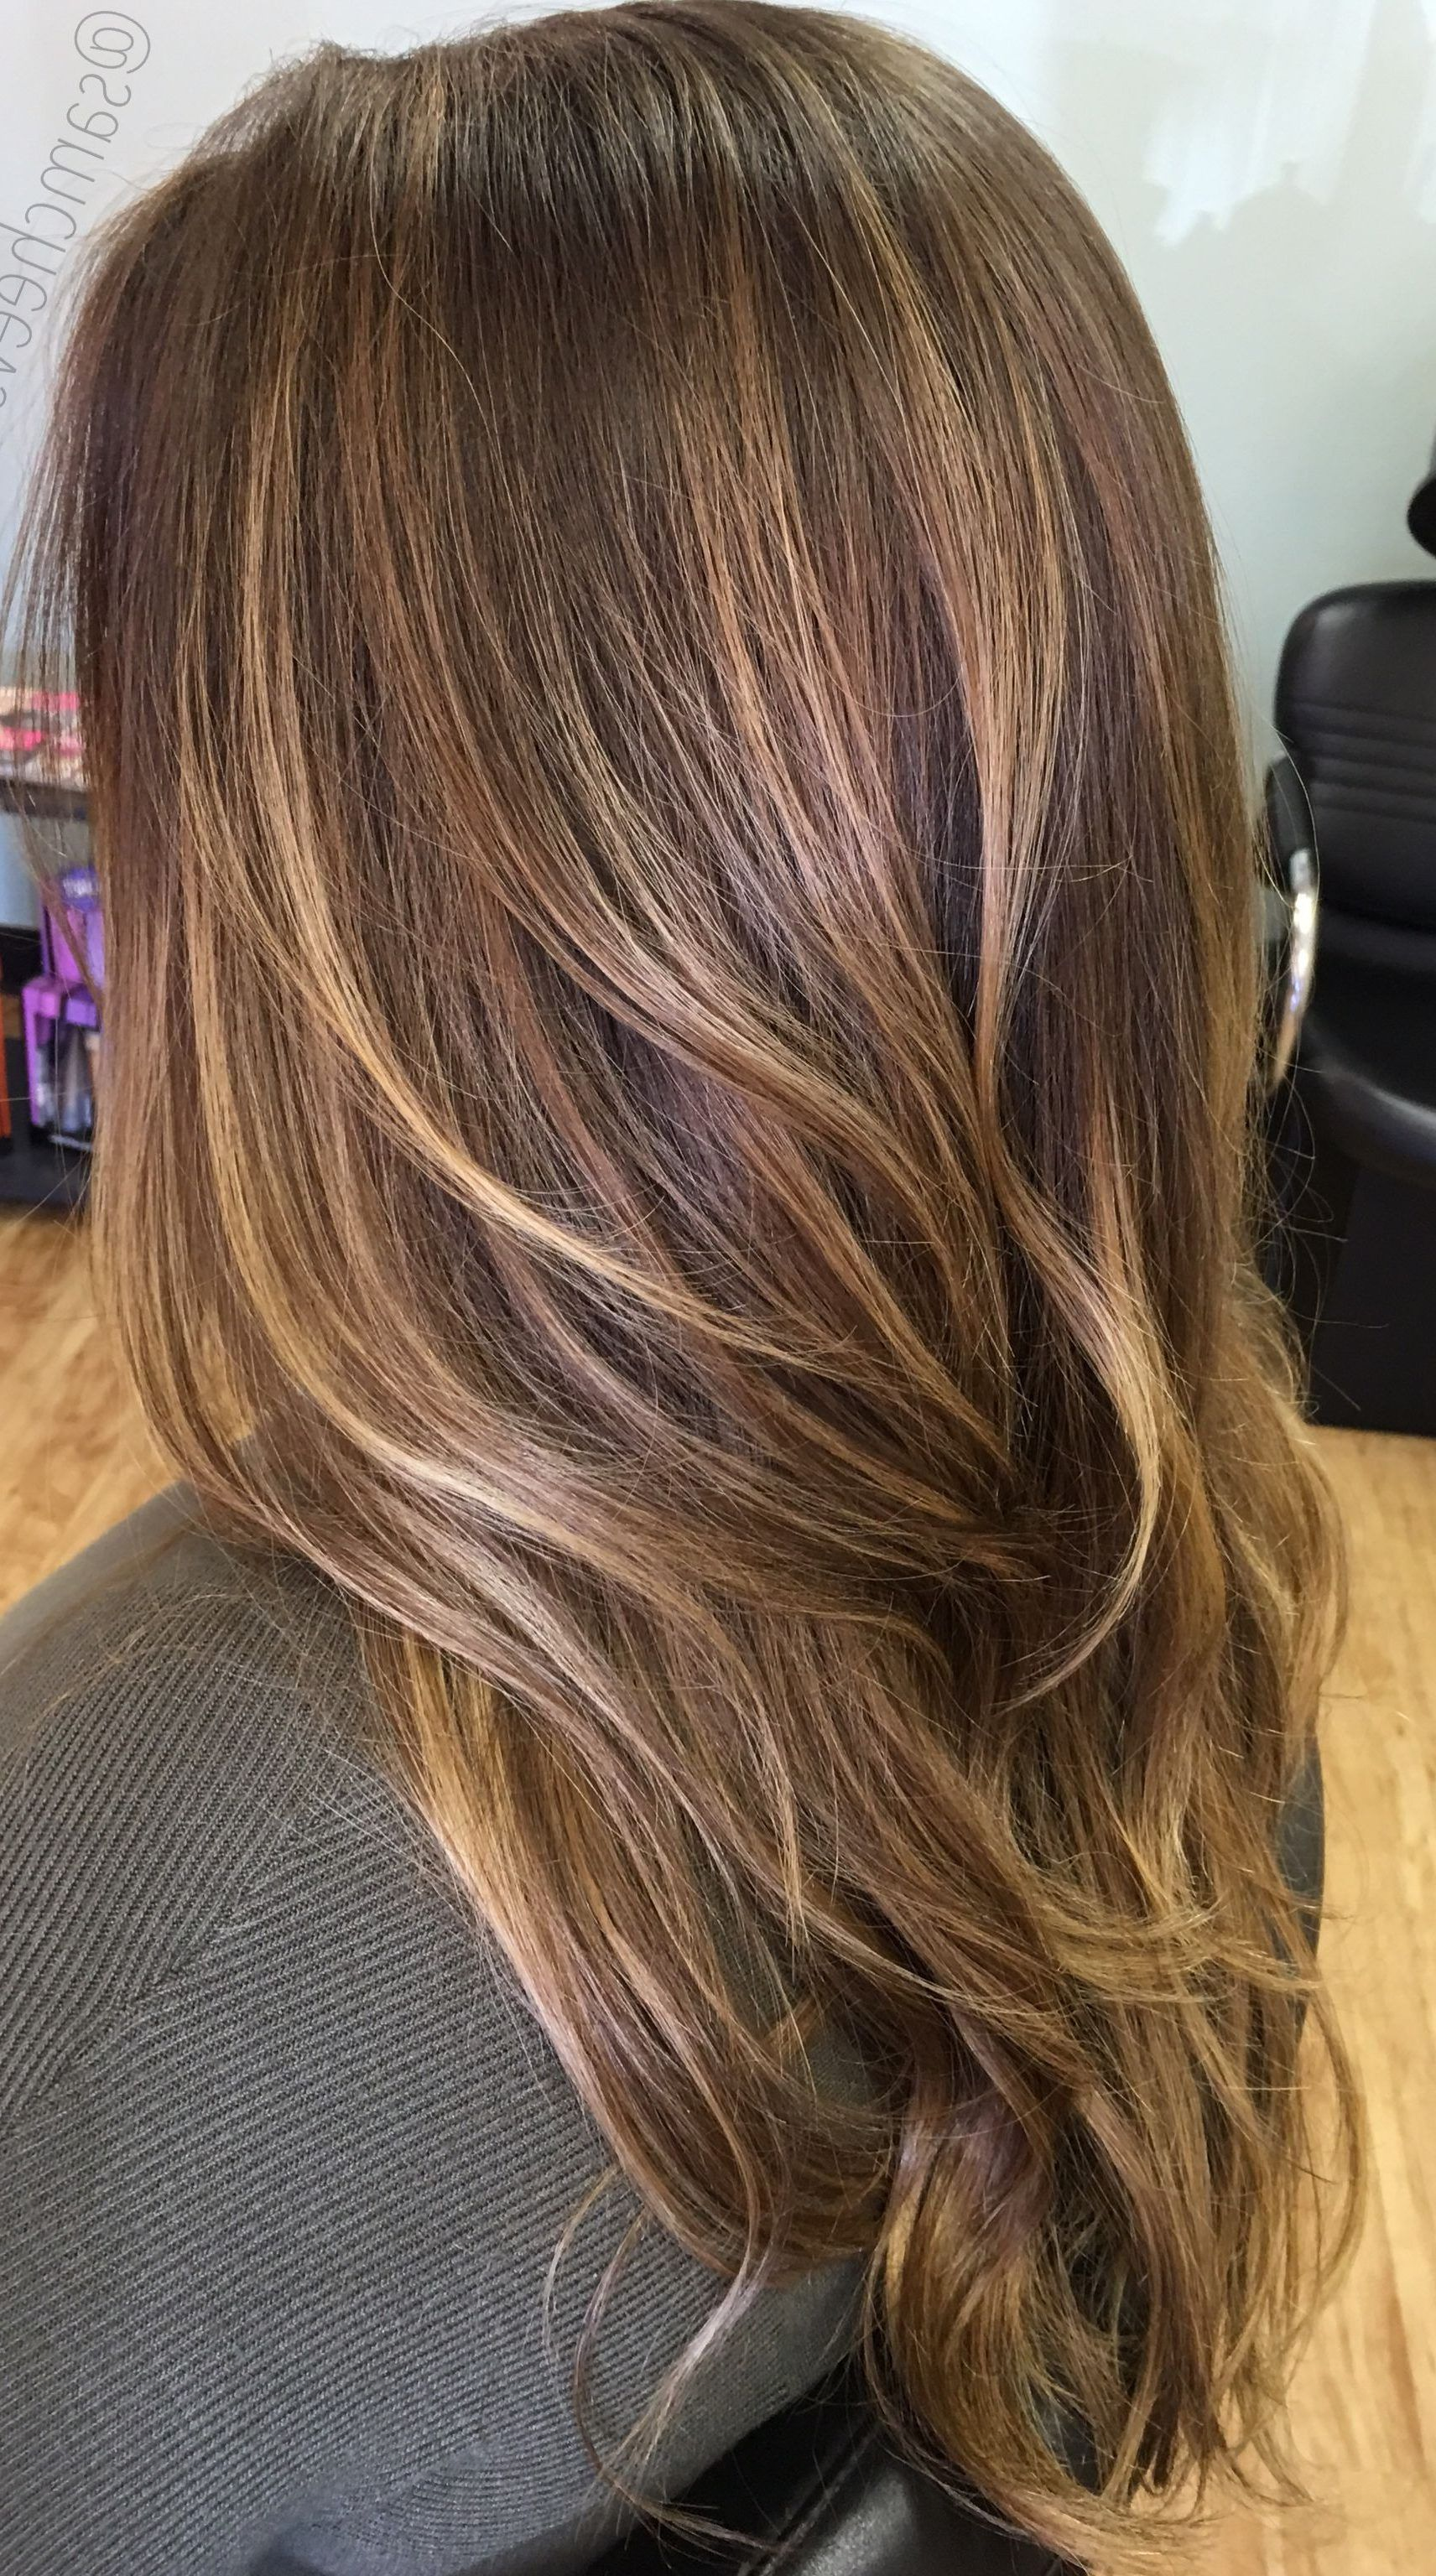 50 Gorgeous Balayage Hair Color Ideas For Blonde Short Straight Hair Straight Short Ideas Gorgeous Color Blo Balayage Hair Short Straight Hair Short Hair Model